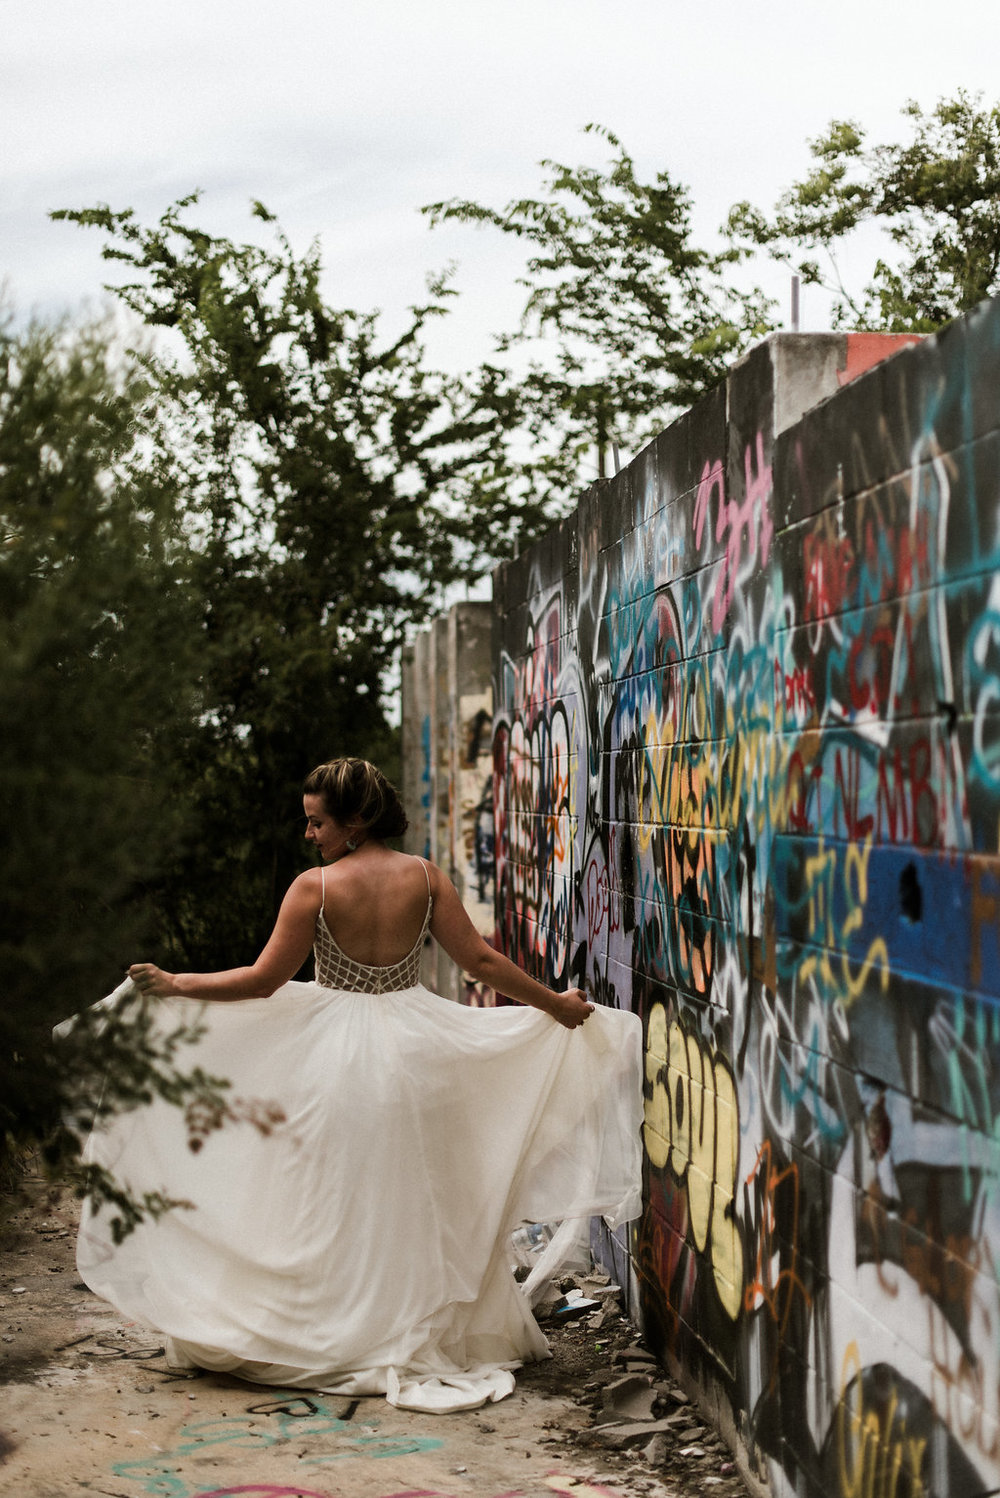 Savannah-Stonehenge-lauren-imus-photography-savannah-wedding-photographer-blush-by-hayley-paige-honeycomb-ivory-and-beau-bridal-boutique-savannah-wedding-dresses-savannah-bridal-boutique-savannah-wedding-planner-savannah-florist-graffiti-wedding-10.jpg